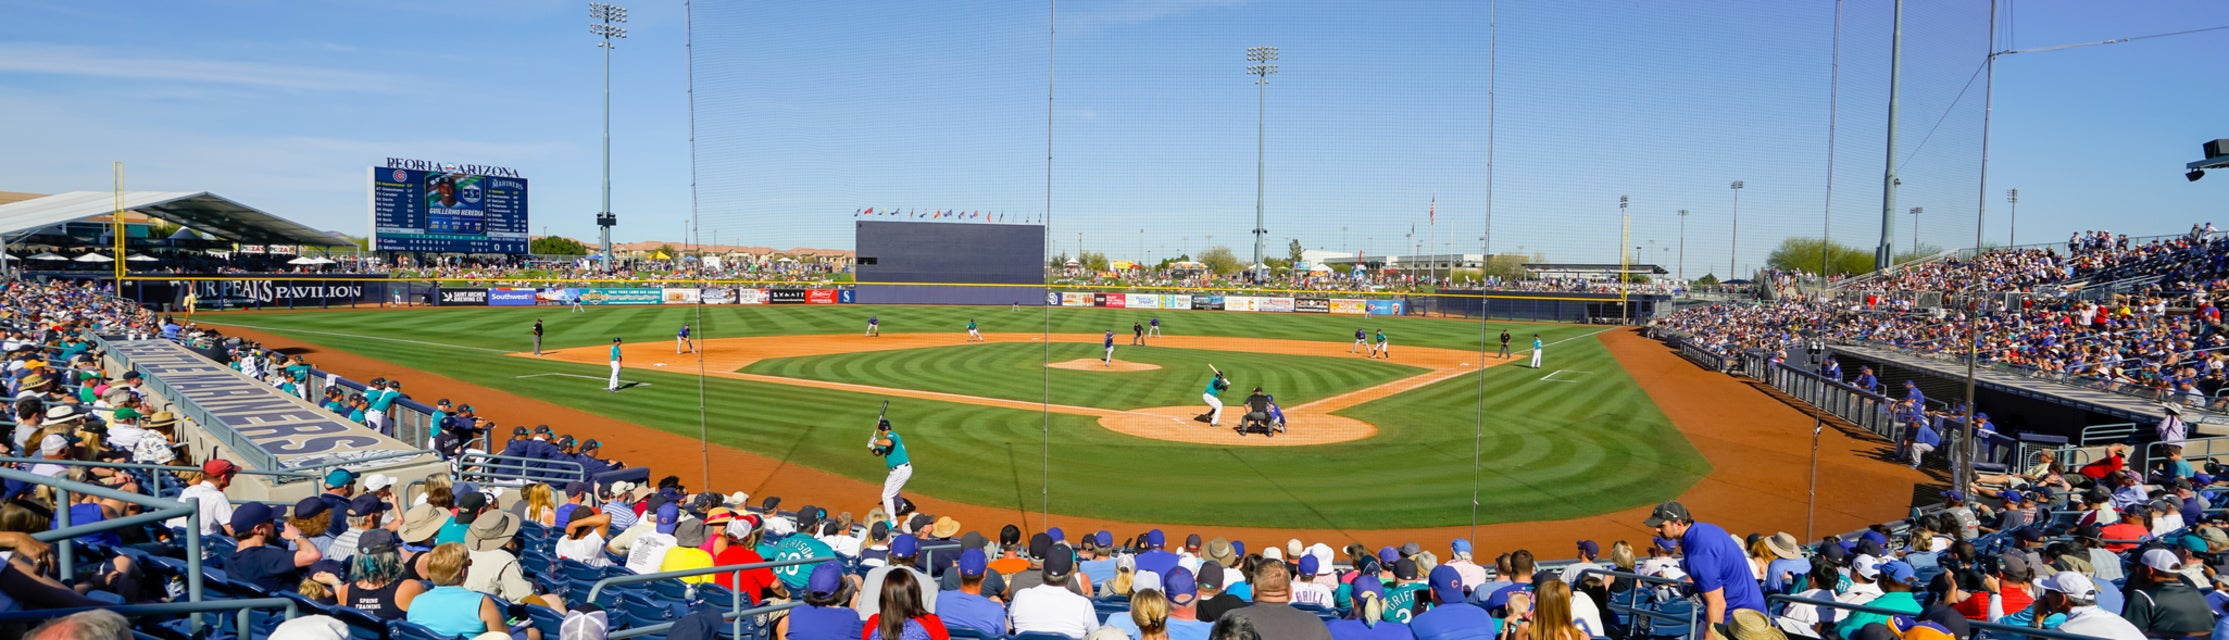 Mariners - Spring Training Tickets